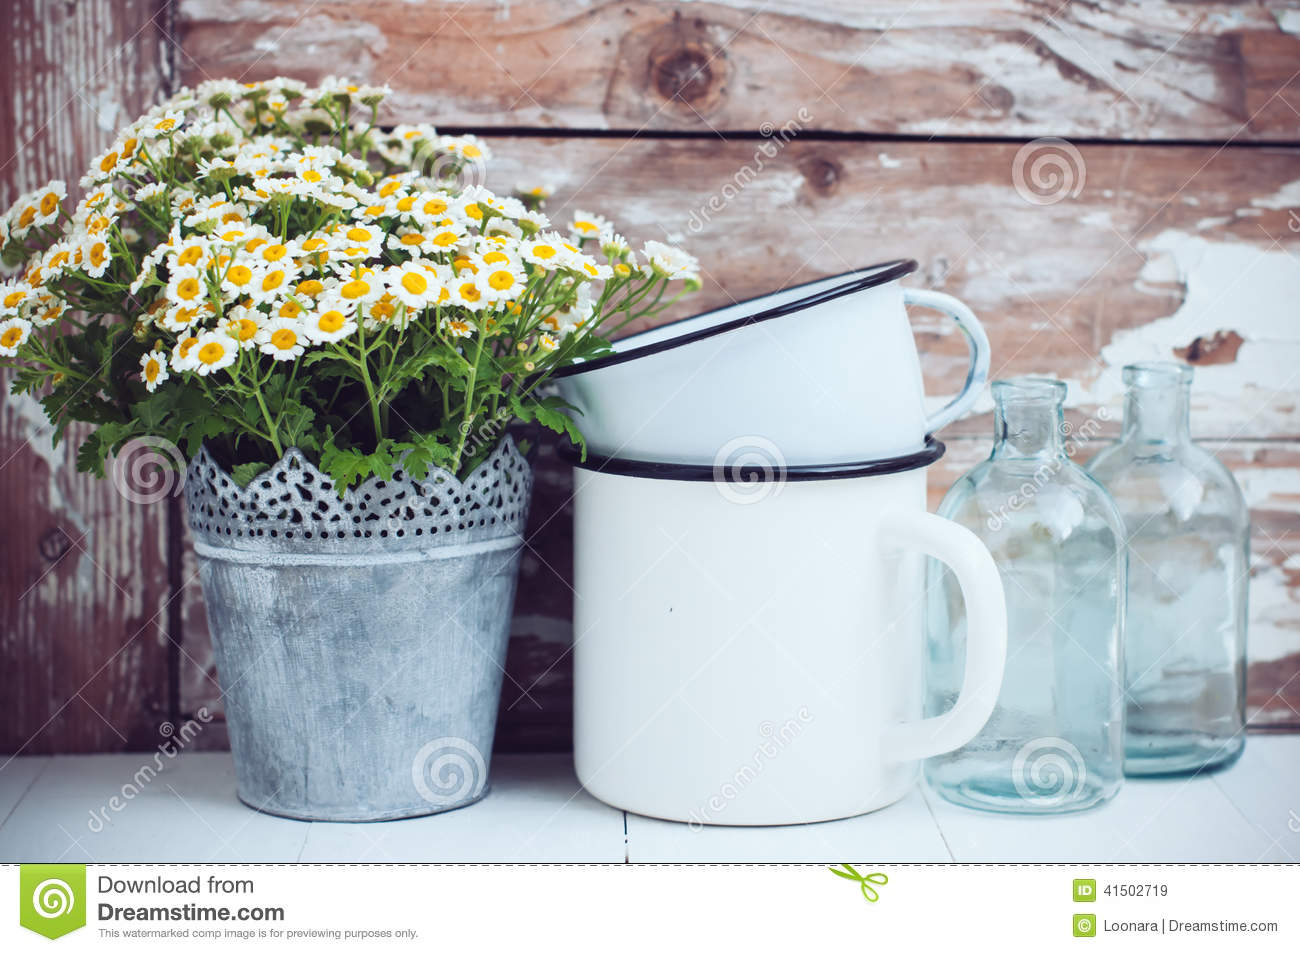 Home Decor Stock Image Image Of Design Country Mugs 41502719